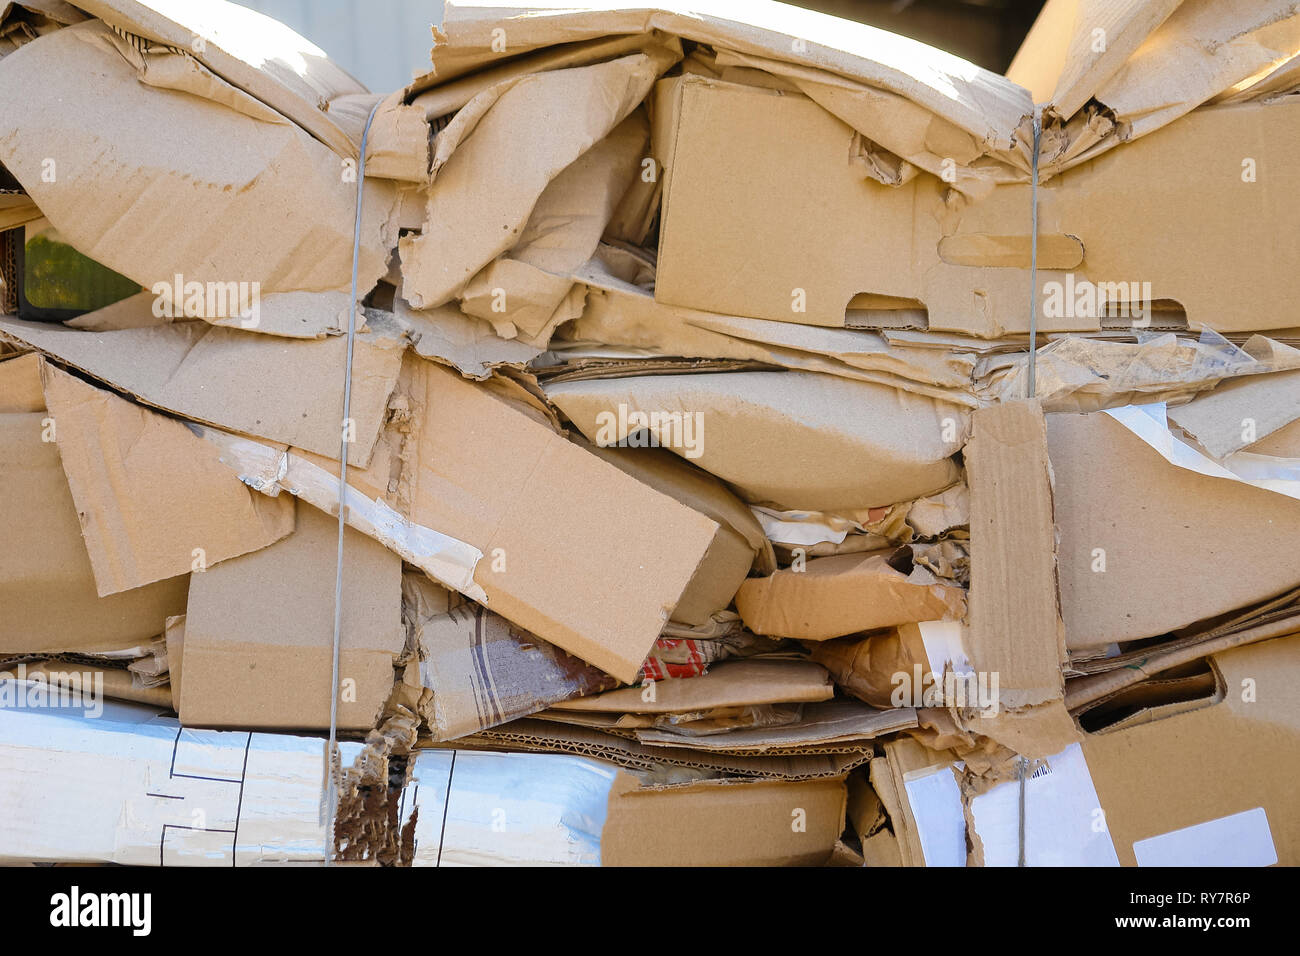 Waste paper from boxes and cardboard, the fee for recycling Stock Photo